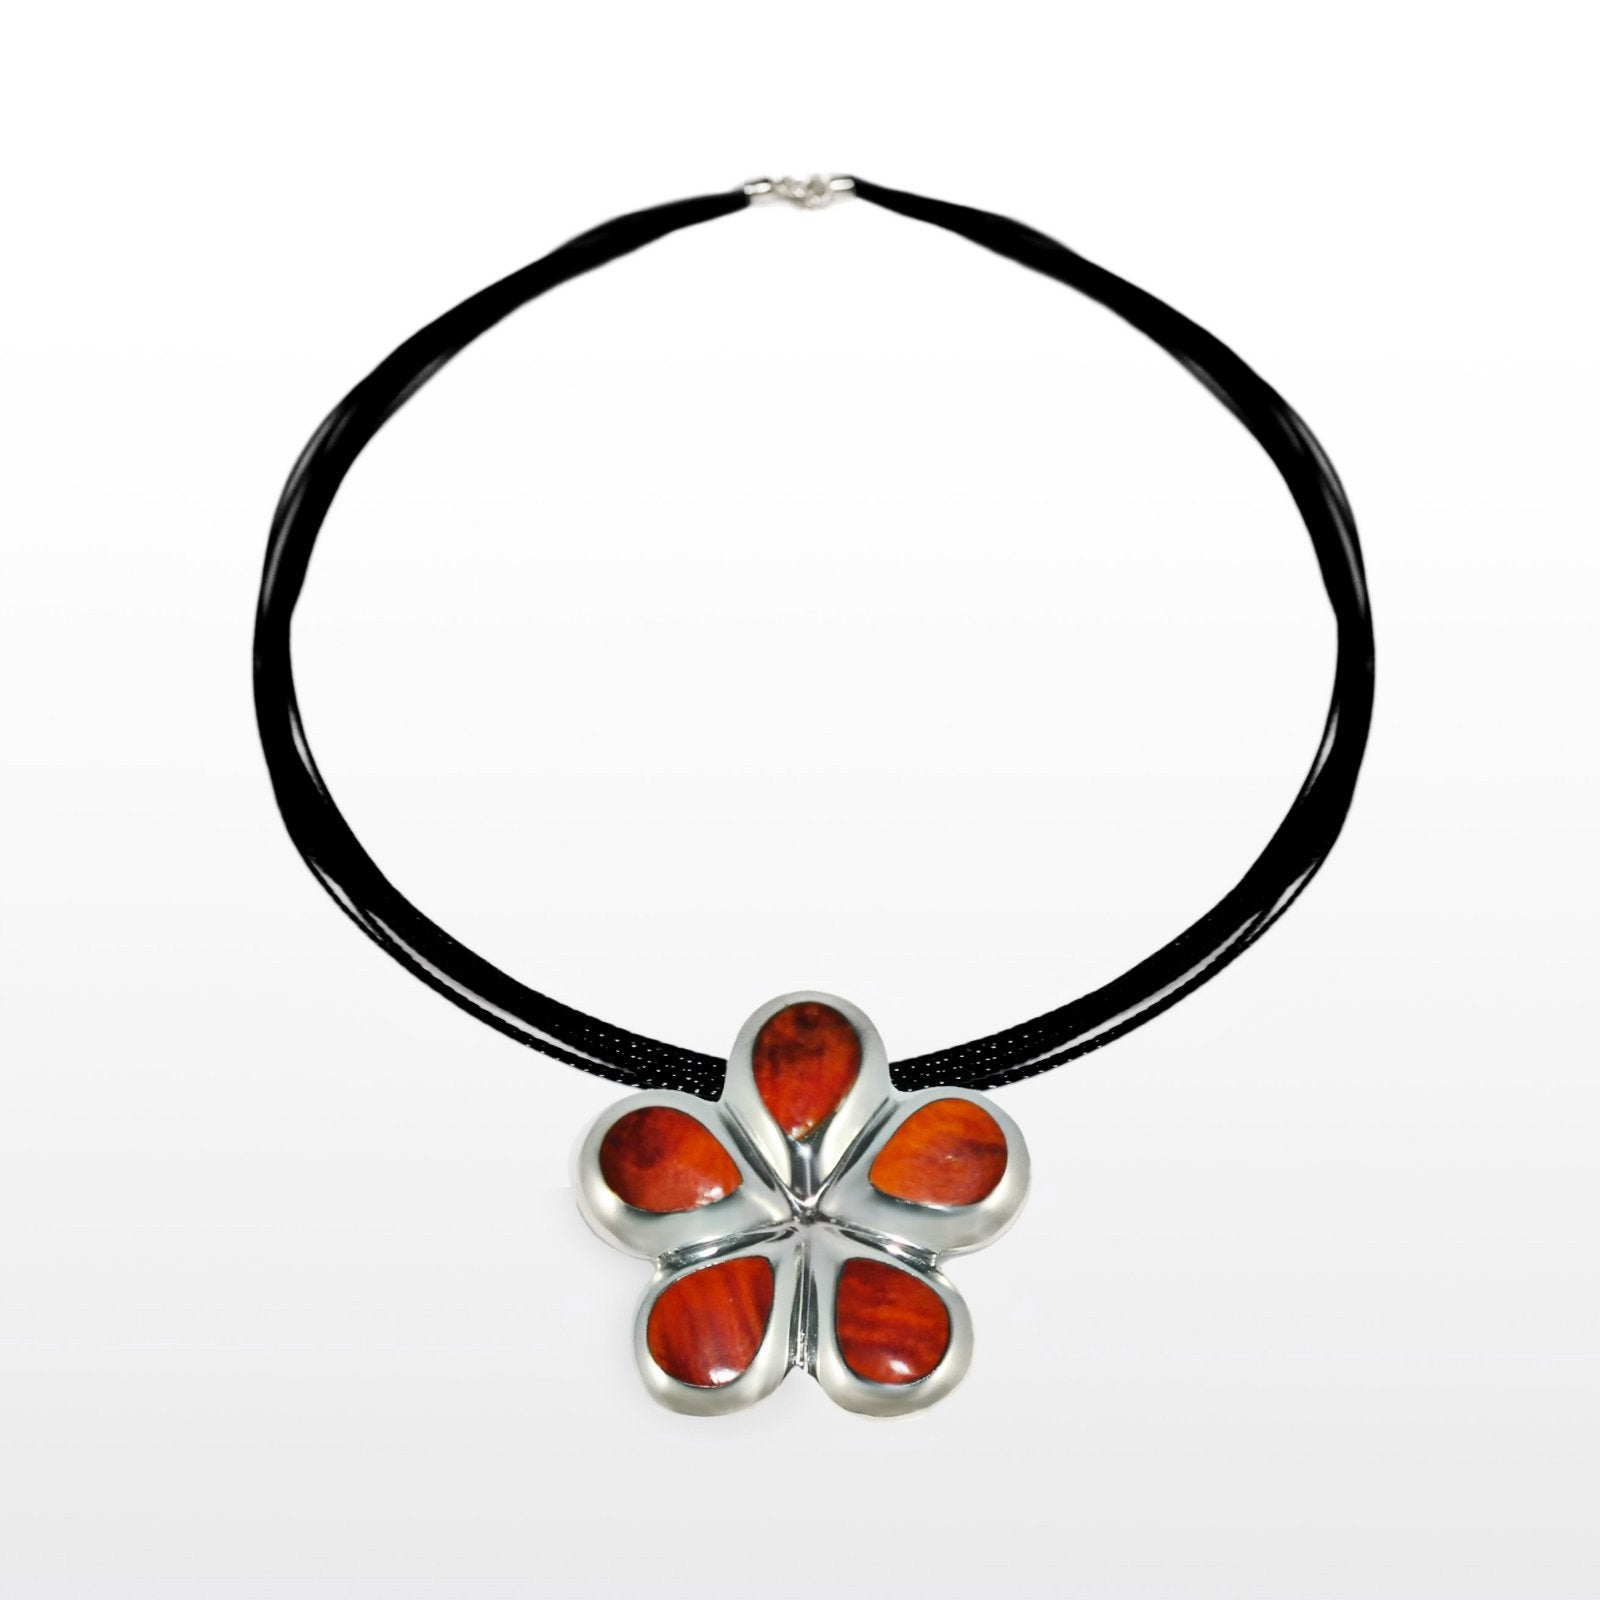 Spondylus & Sterling Silver Flower Pendant & Earrings Set - Qinti - The Peruvian Shop